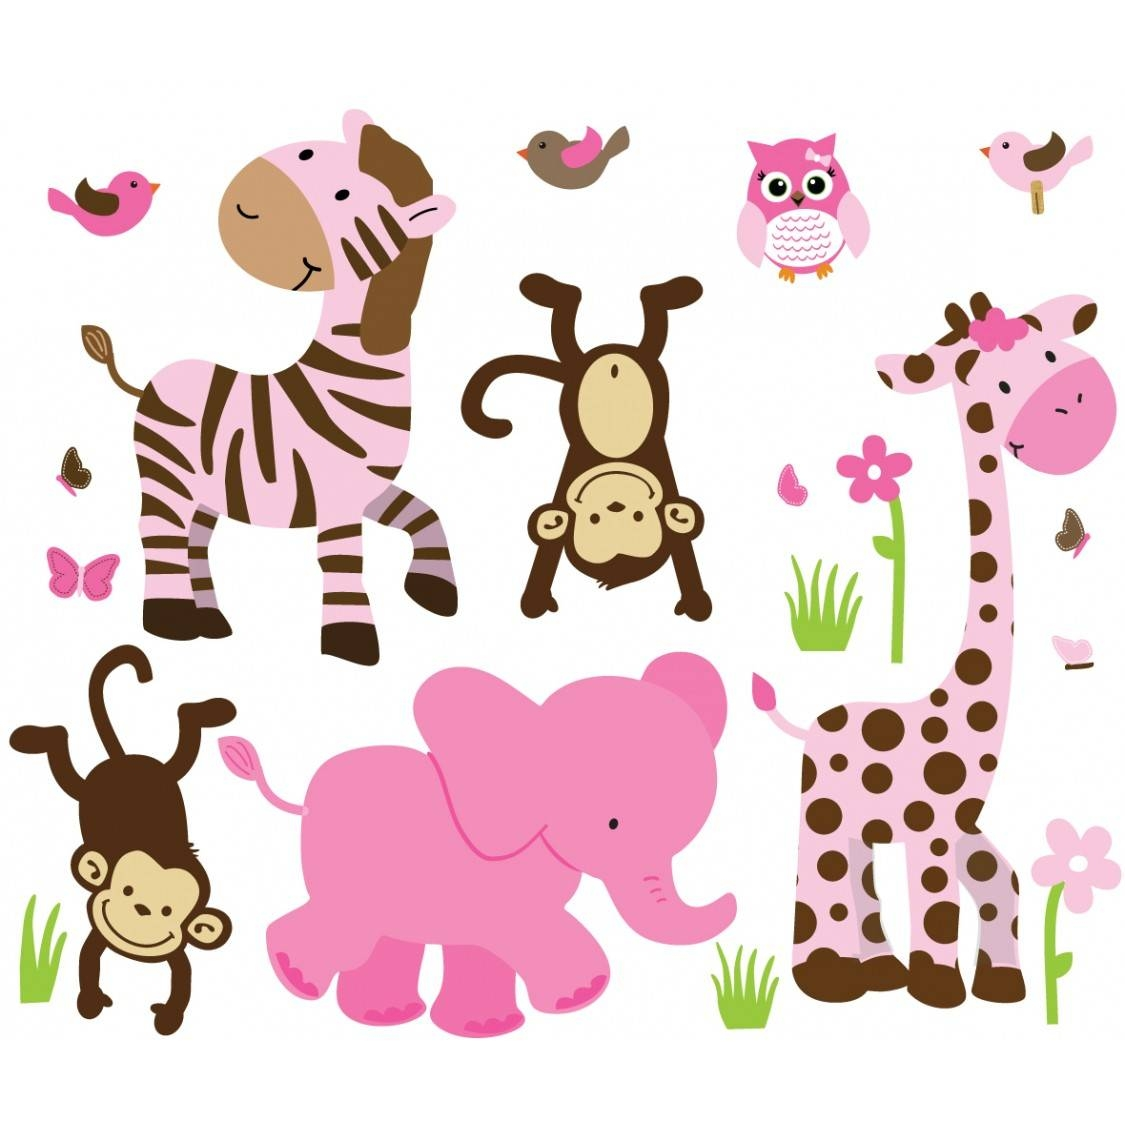 Pink & Green Jungle Nursery Wall Decals For Children Pertaining To Latest Jungle animal Wall Art (View 9 of 20)